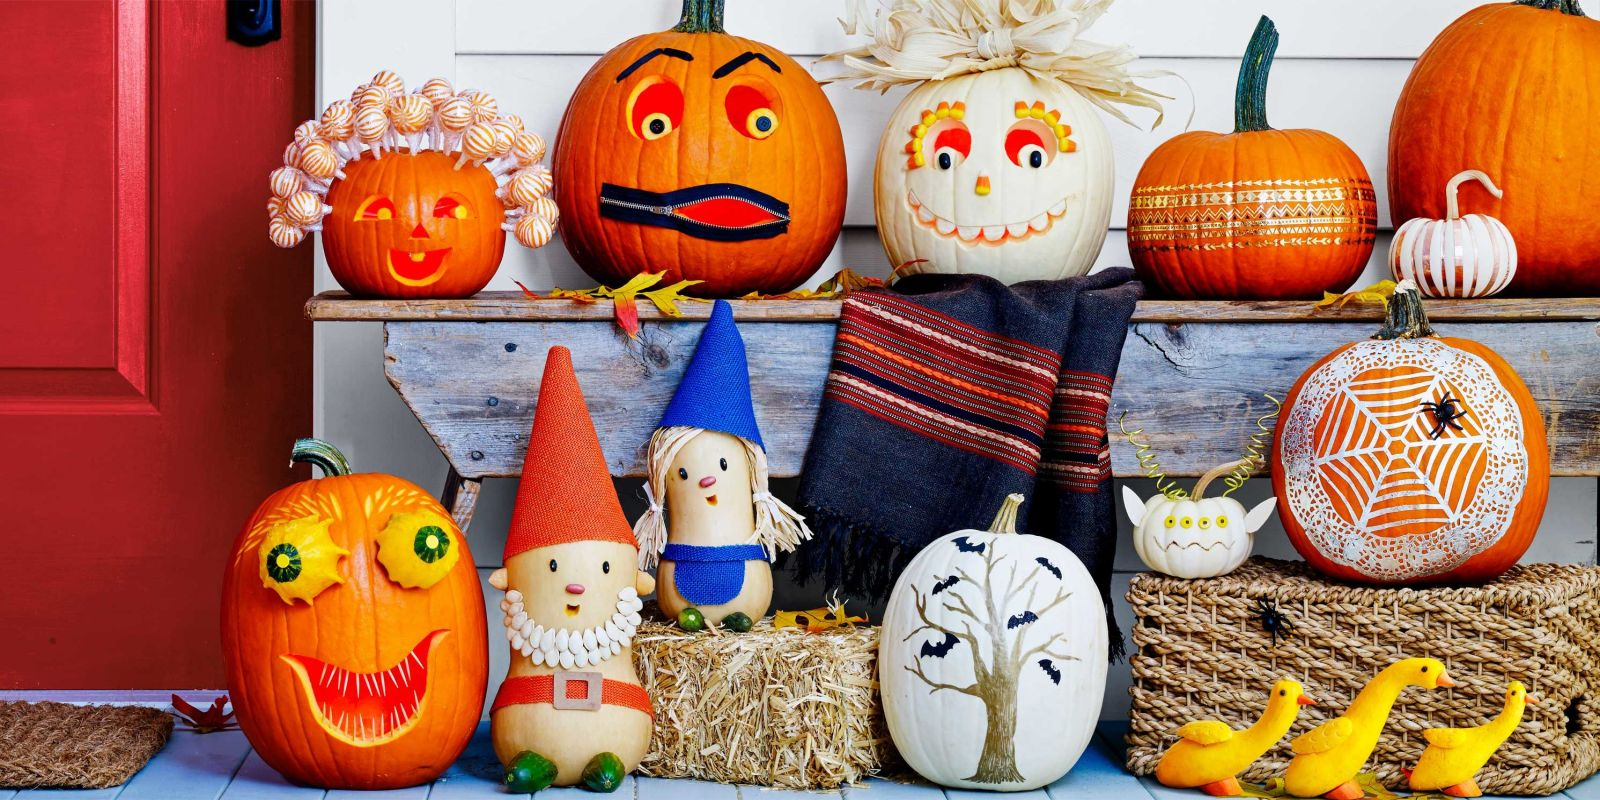 65 best pumpkin carving ideas halloween 2017 creative for Different pumpkin designs